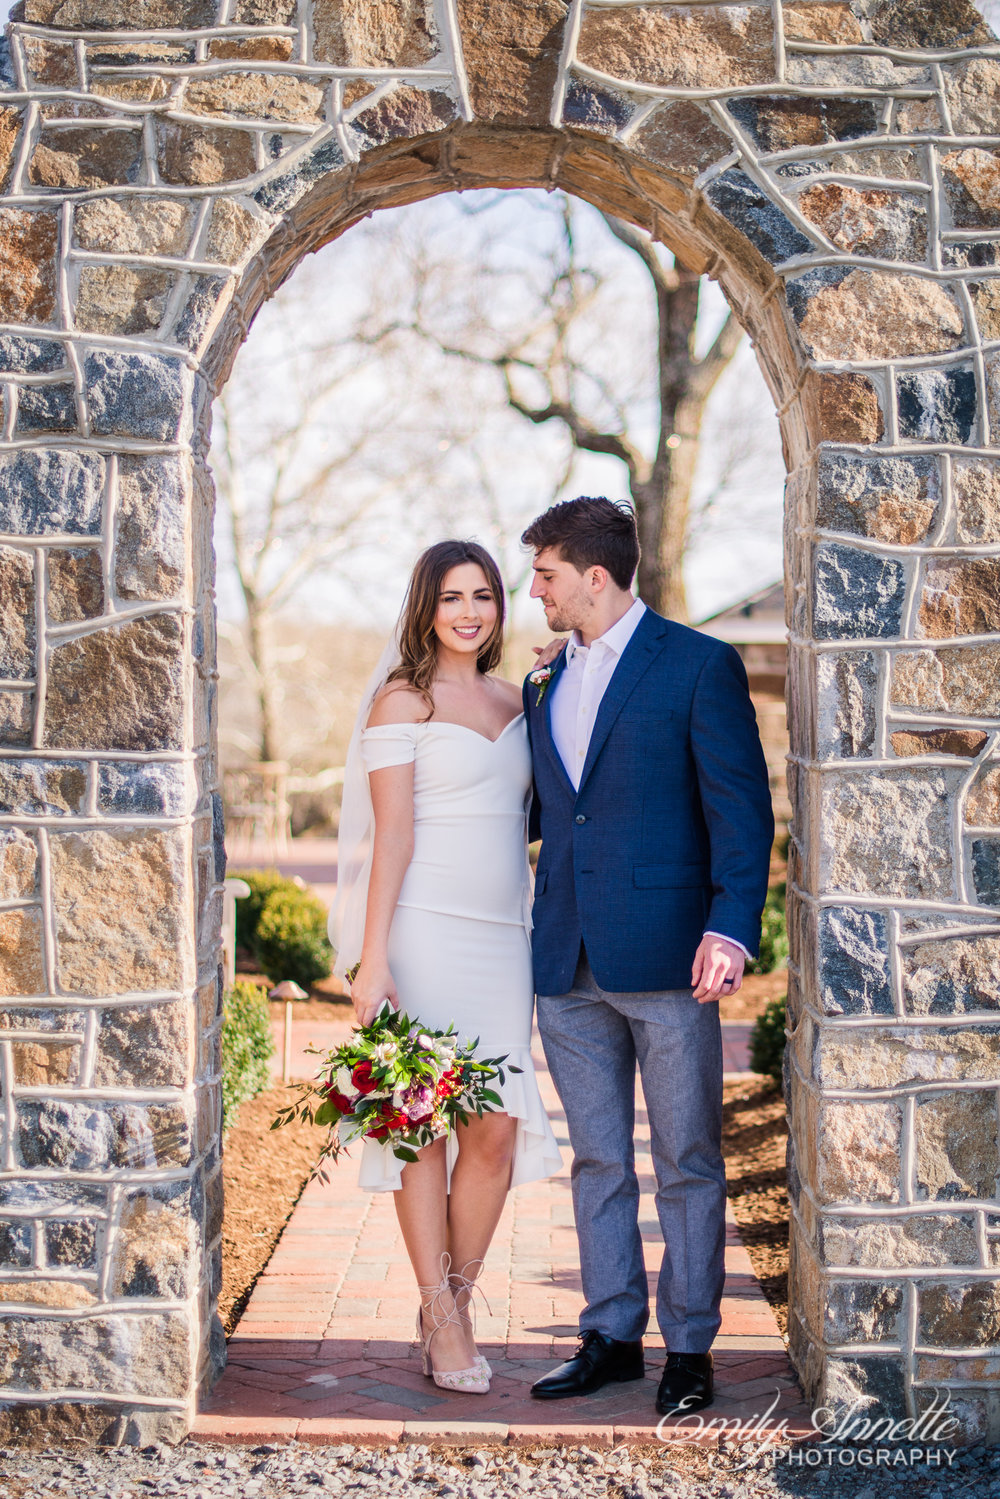 A bride and groom stand together under a stone arch on their wedding day at Fleetwood Farm Winery in Leesburg, Virginia